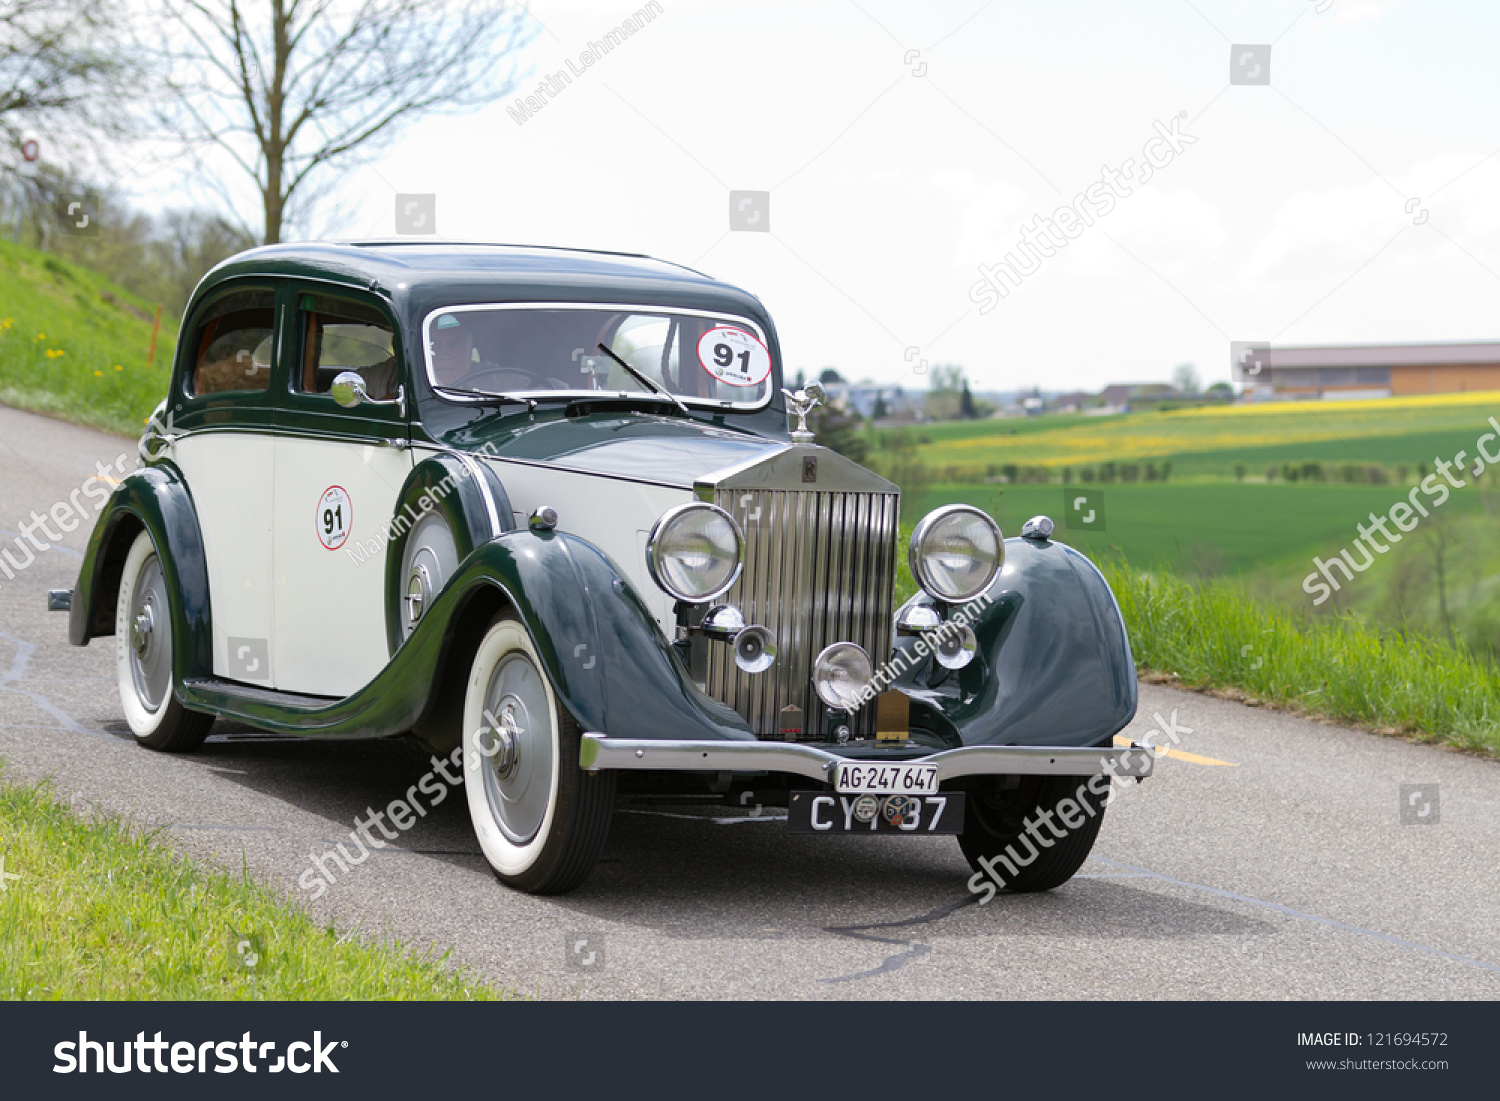 mutschellen switzerland april 29 vintage pre war race car rolls royce 25 30 from 1936 at grand. Black Bedroom Furniture Sets. Home Design Ideas